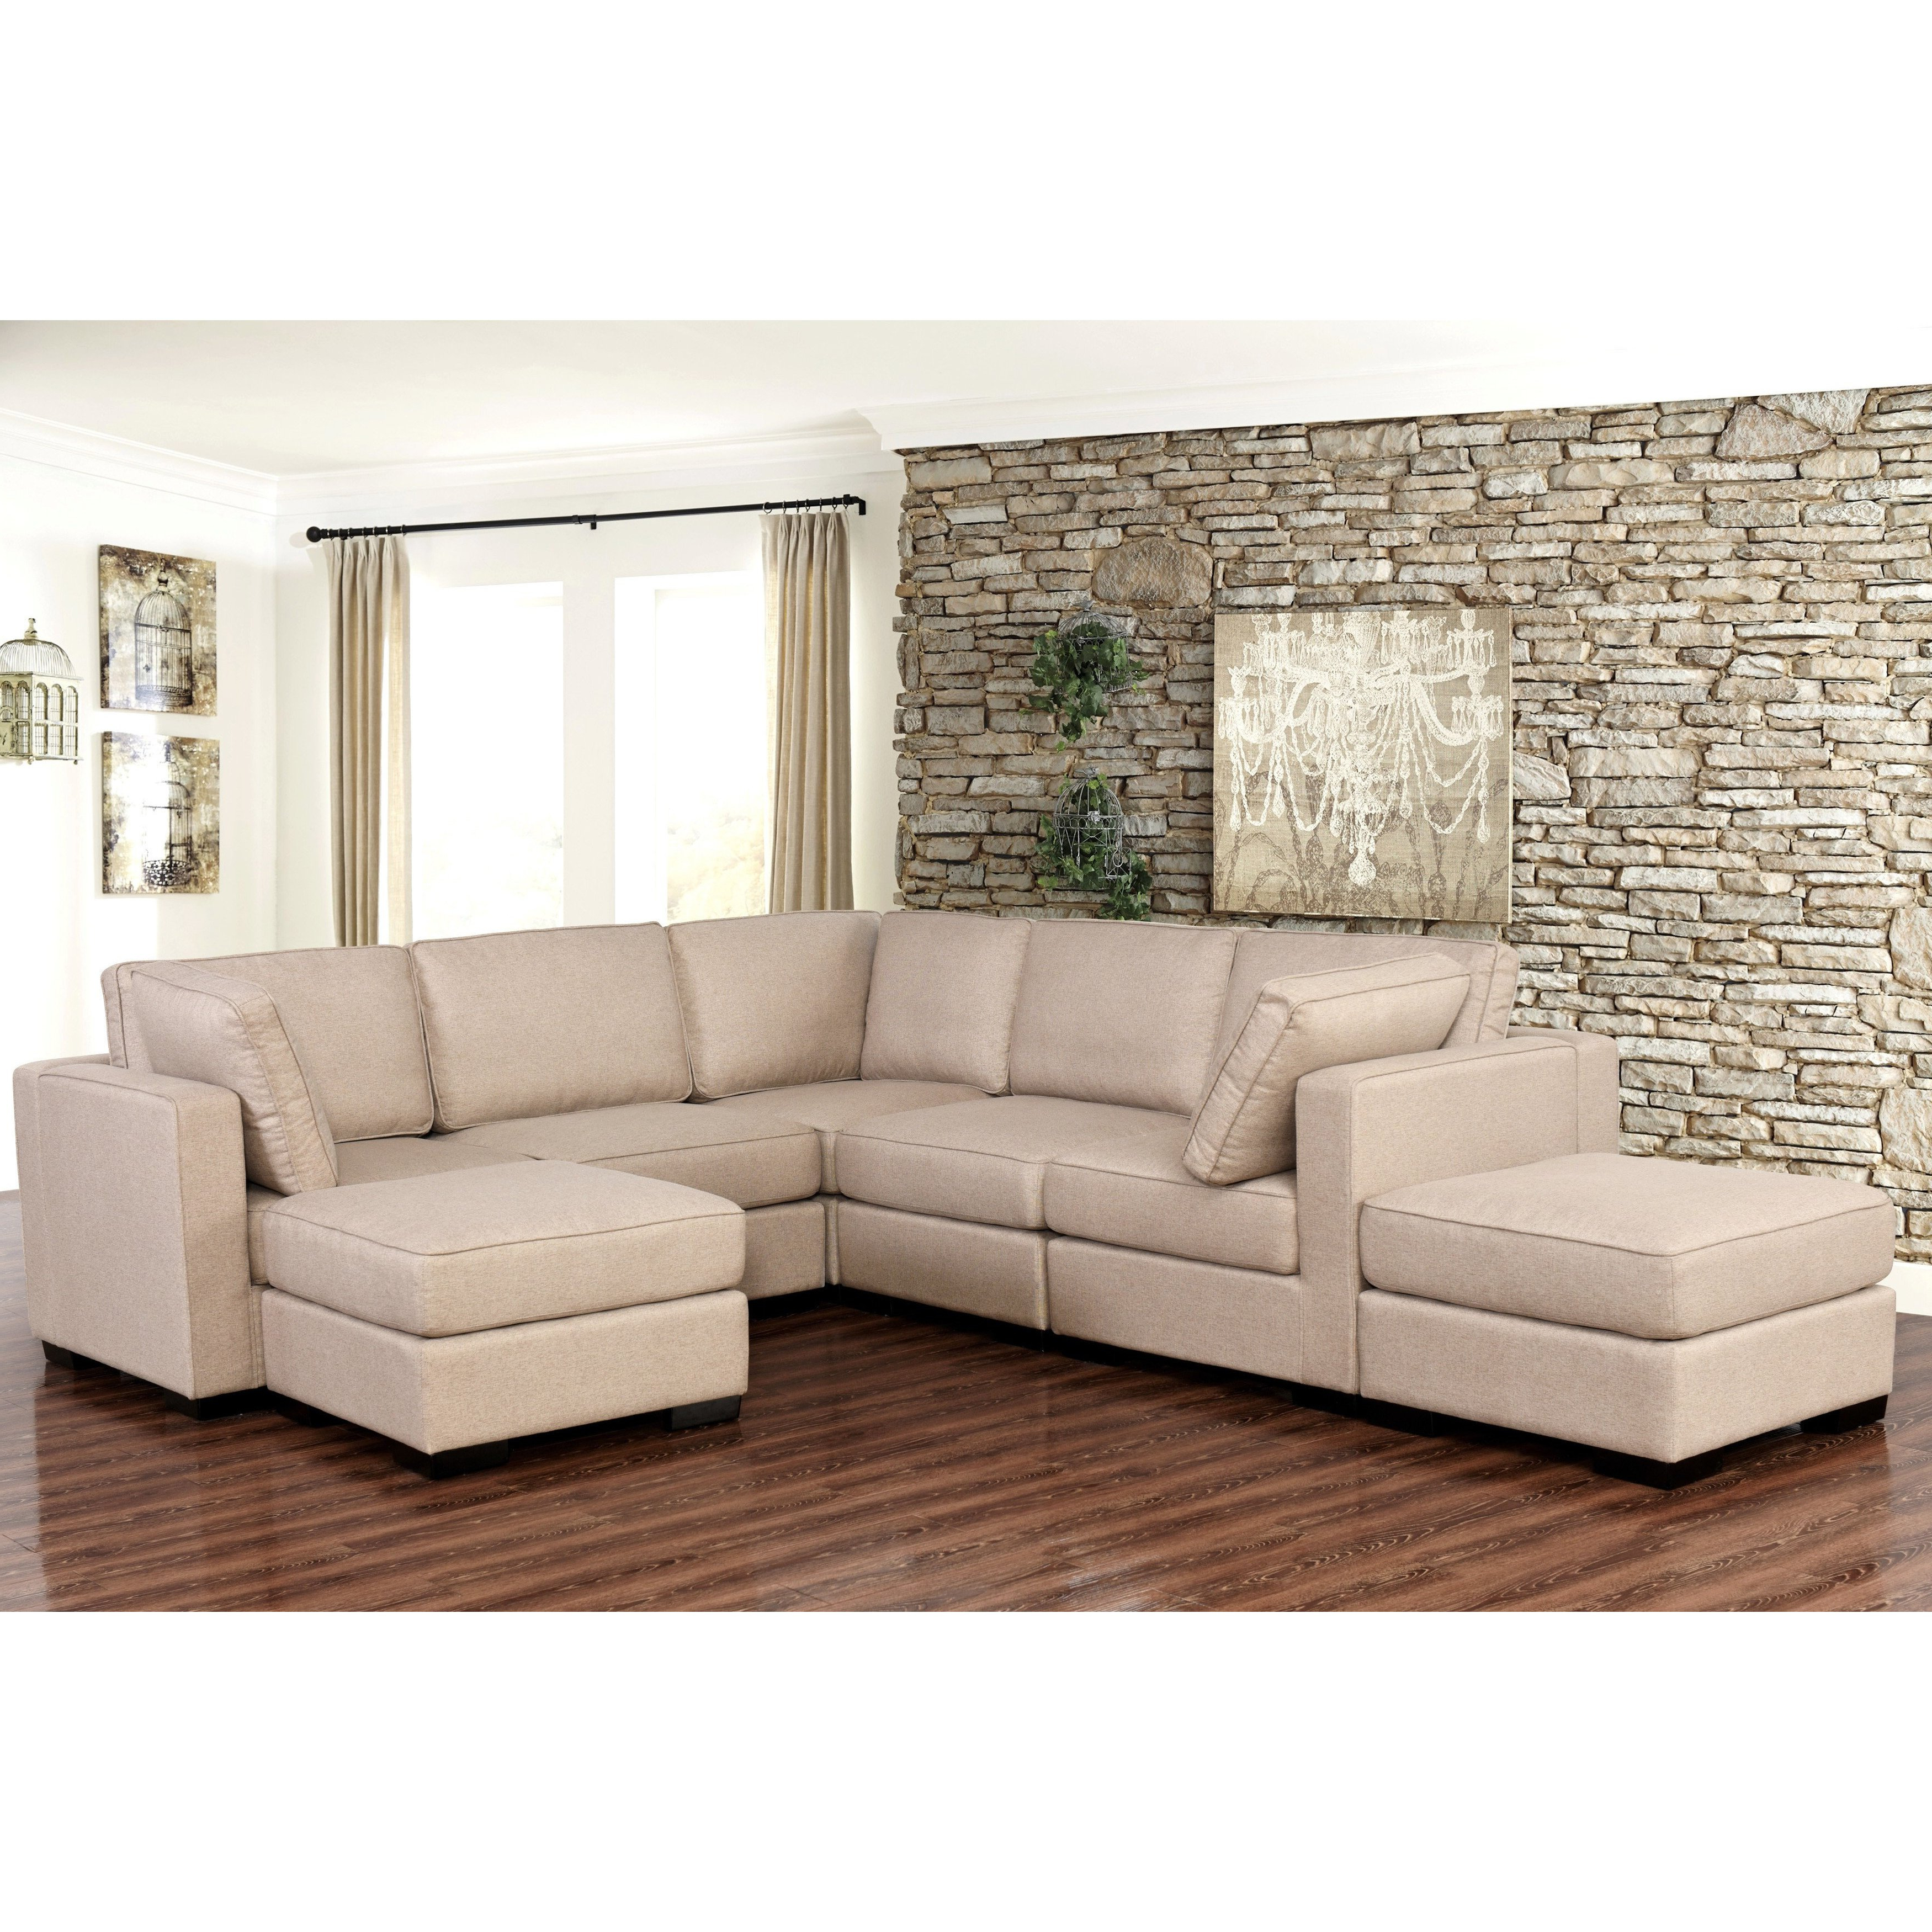 Harper Down Oversized Sofa Chairs Inside Widely Used Shop Abbyson Harper Fabric Modular 7 Piece Sectional – Free Shipping (Gallery 7 of 20)